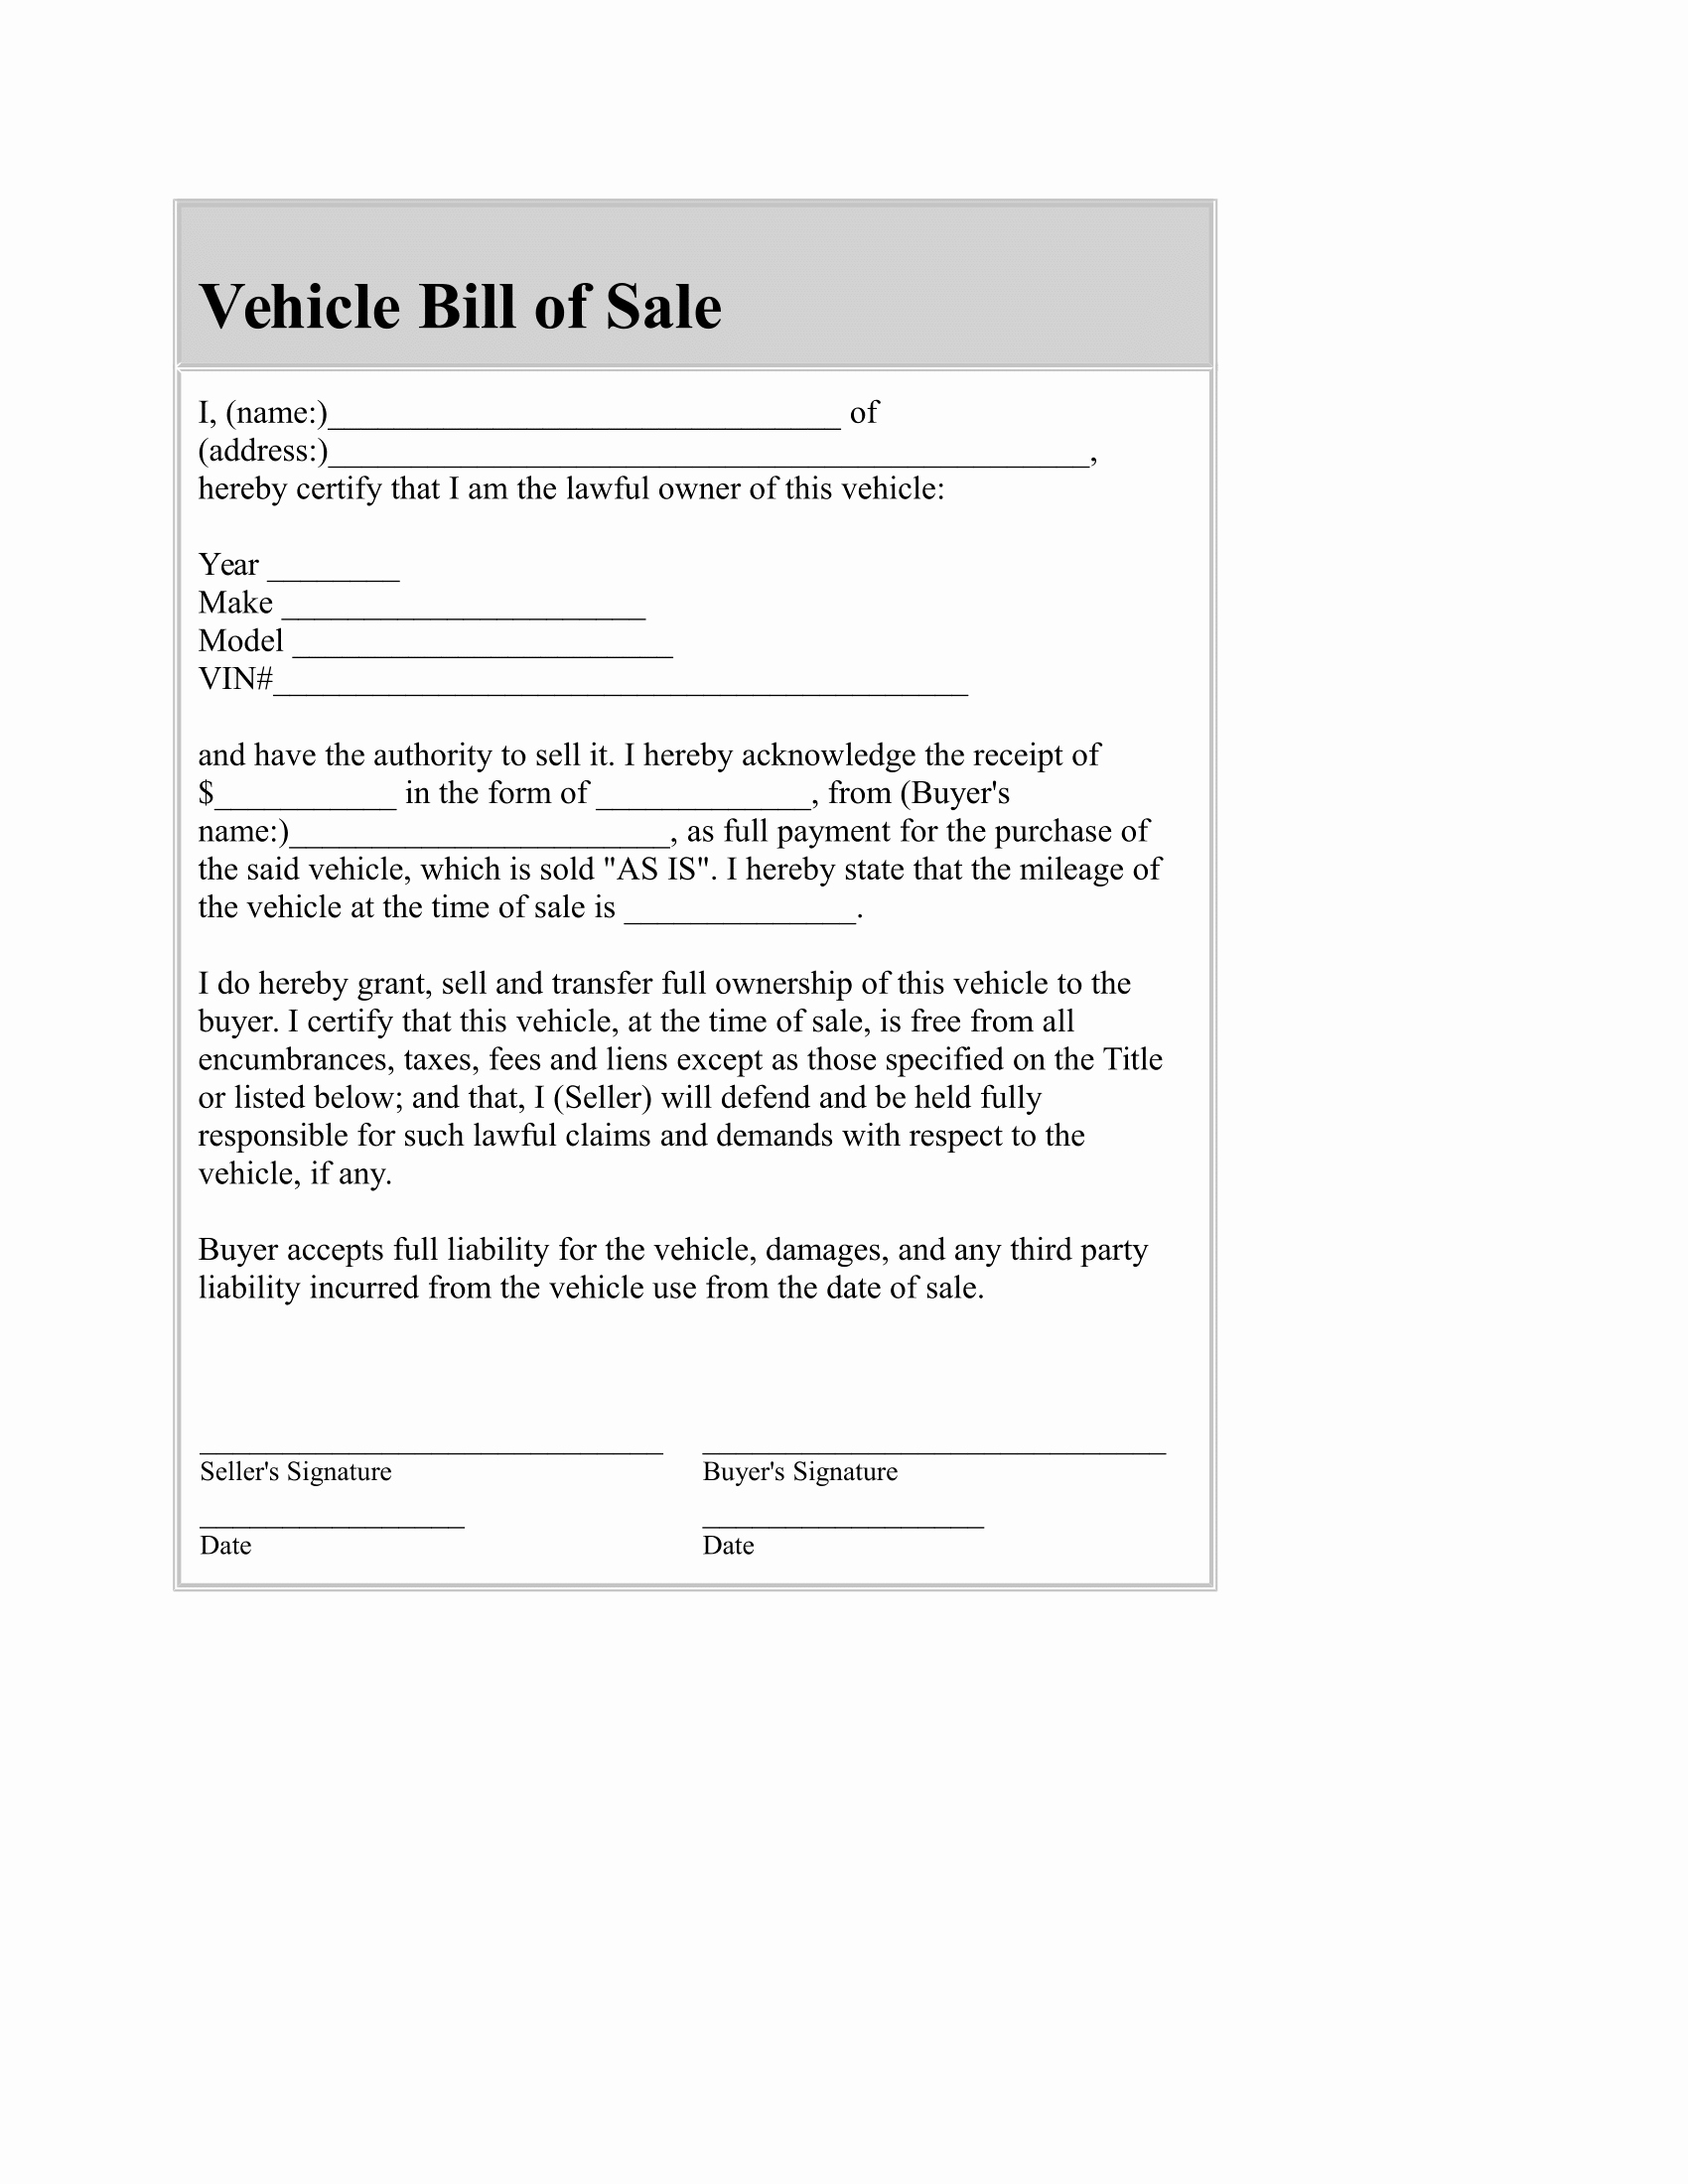 Bill Of Sale Illinois Car Awesome Simple Bill Sale for Car Template Luxury Generald and